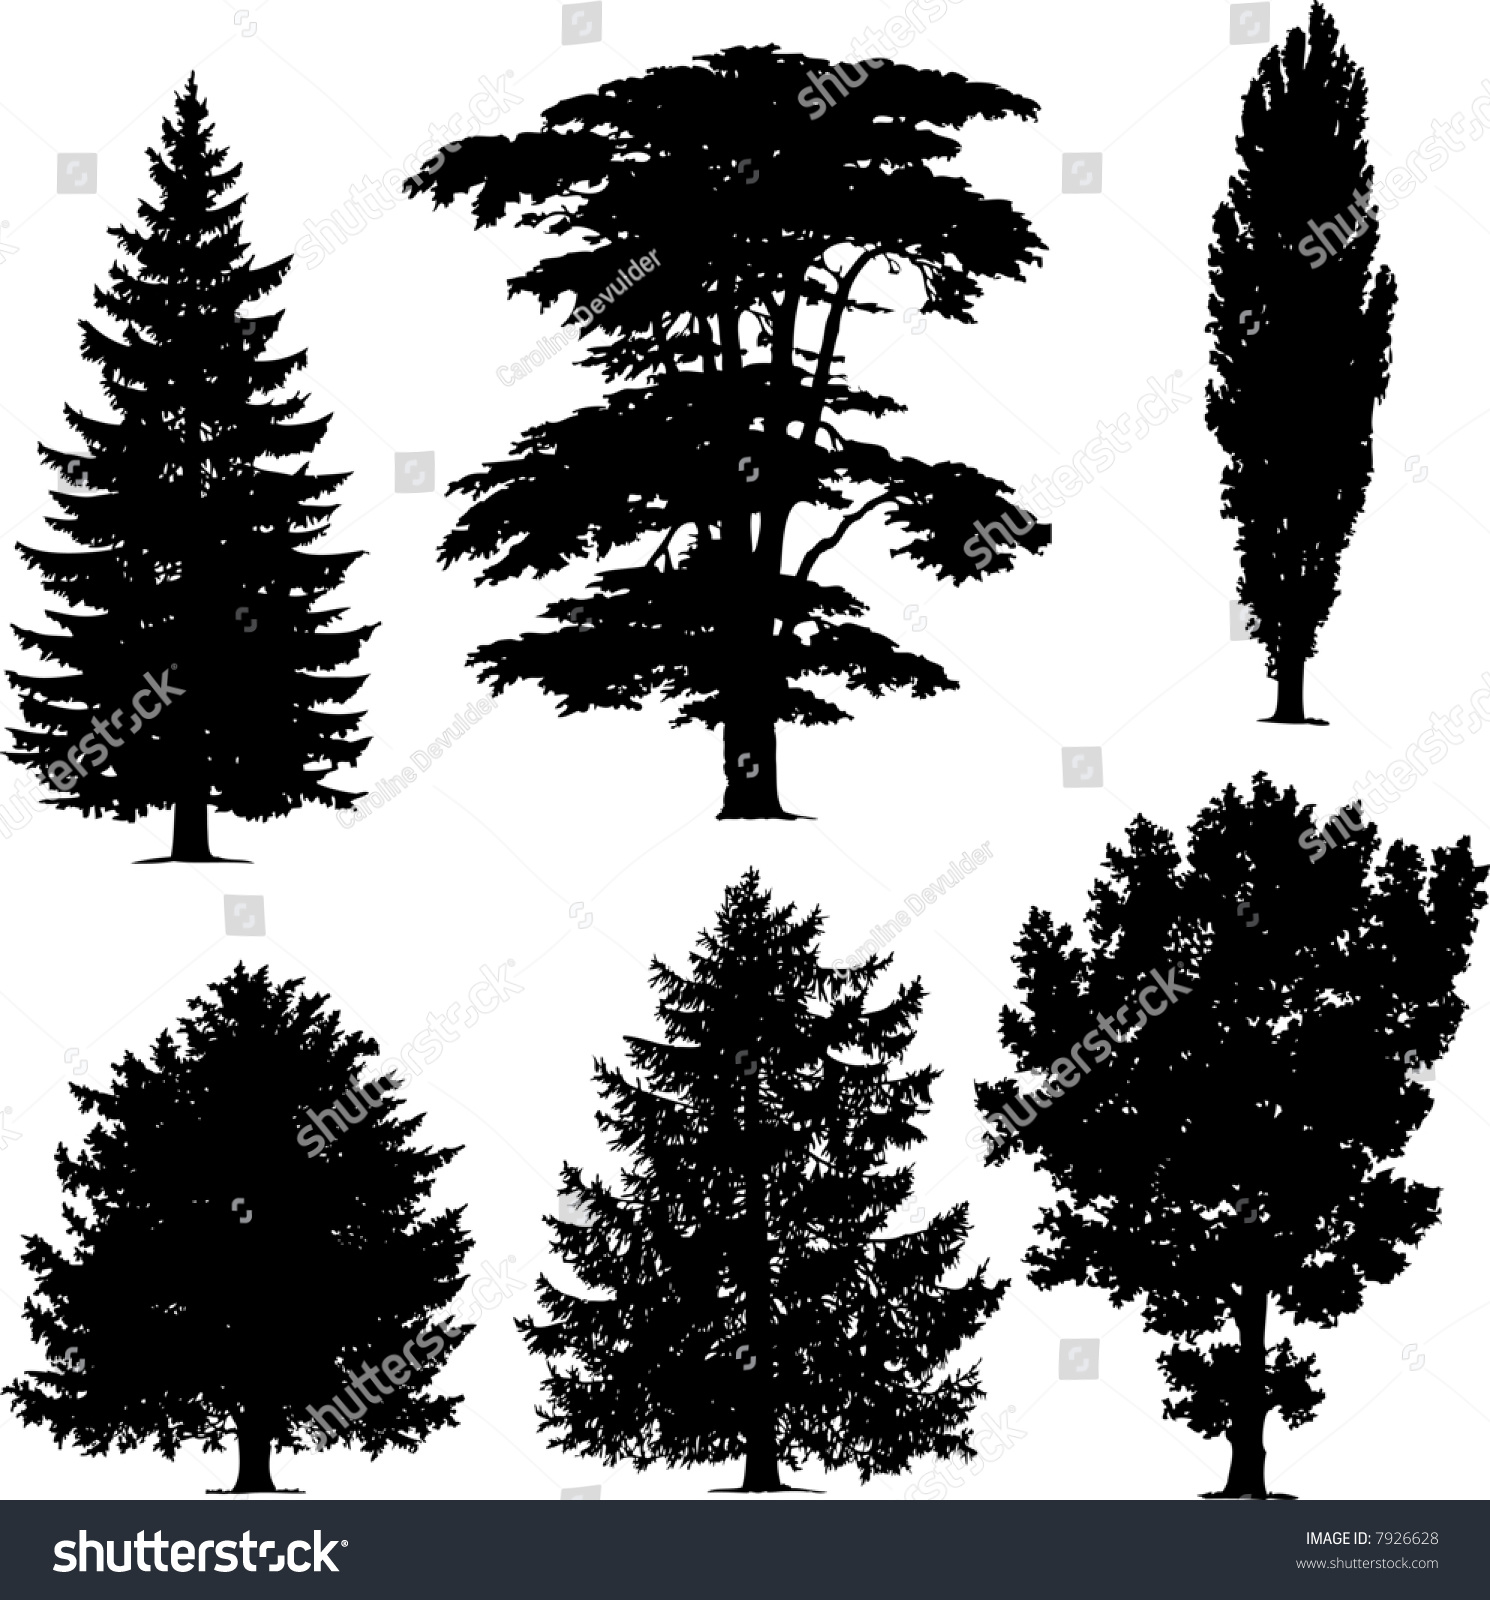 collection of pine trees stock vector 7926628 shutterstock vector pine trees free vector images of pine trees